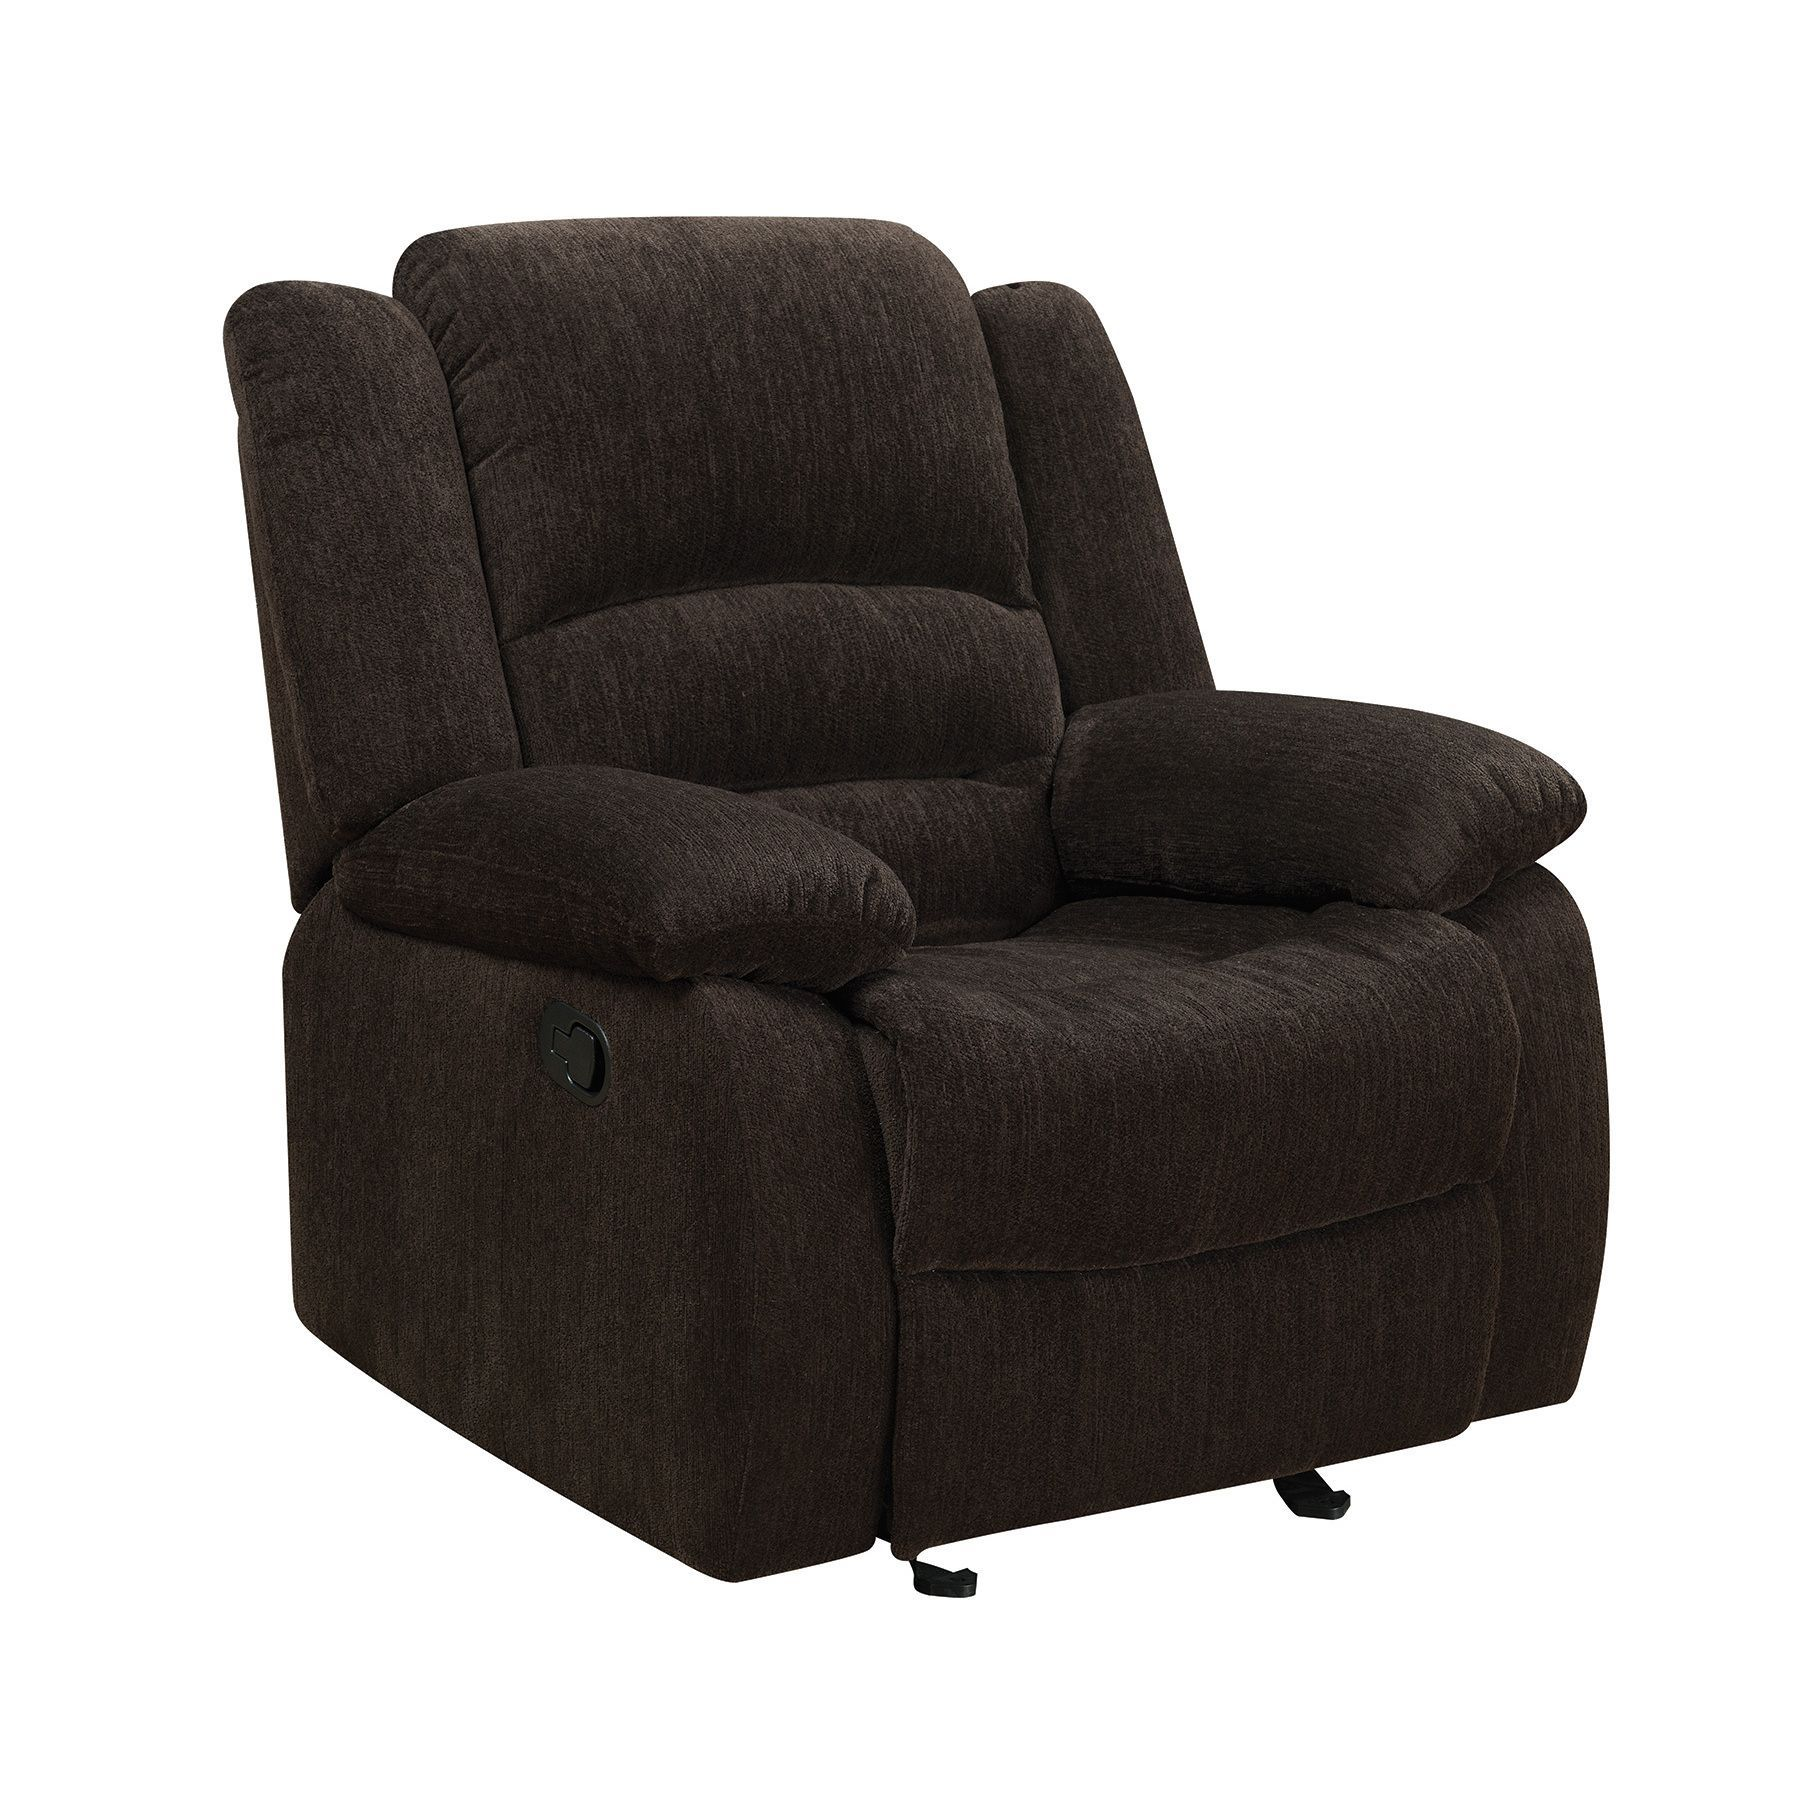 coaster company brown fabric glider recliner chair brown